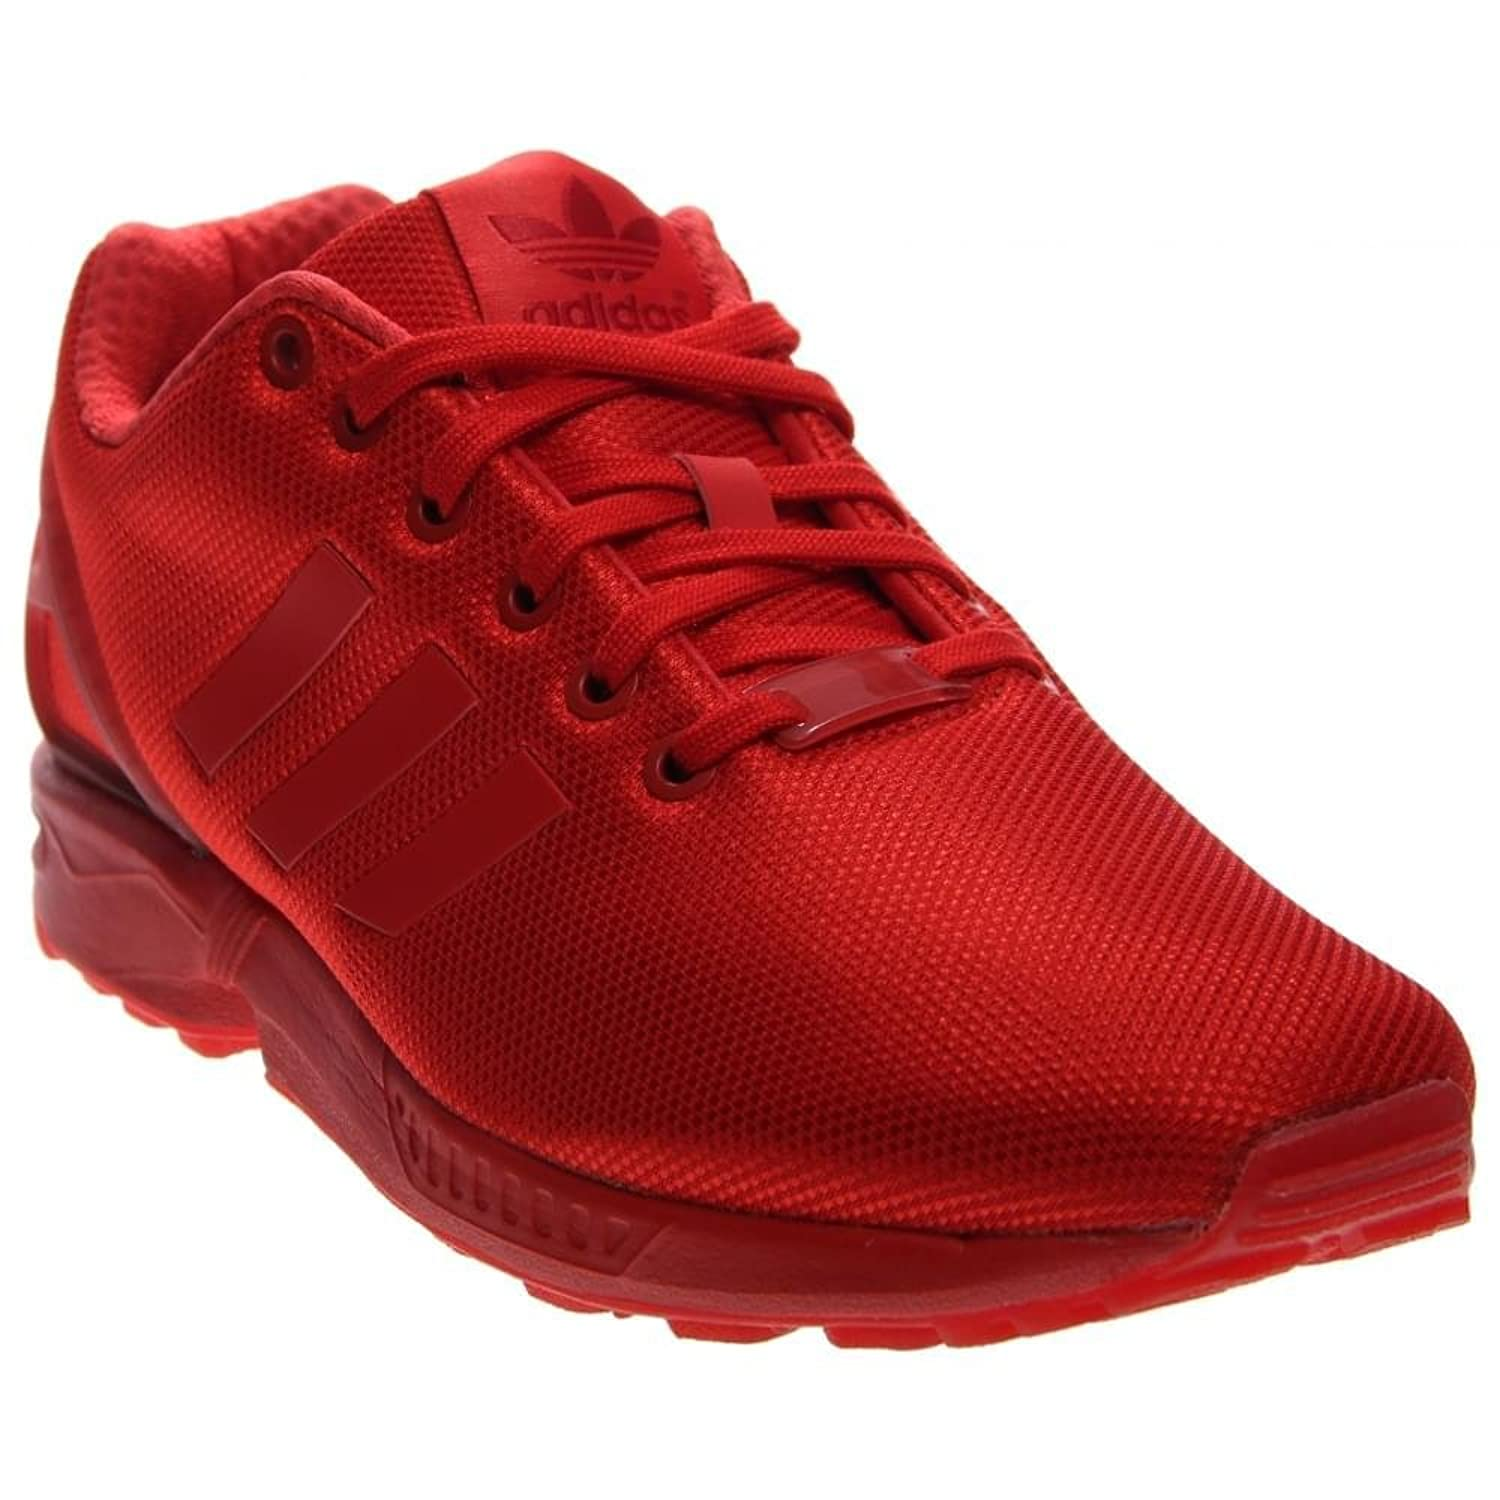 Flux Adidas Red